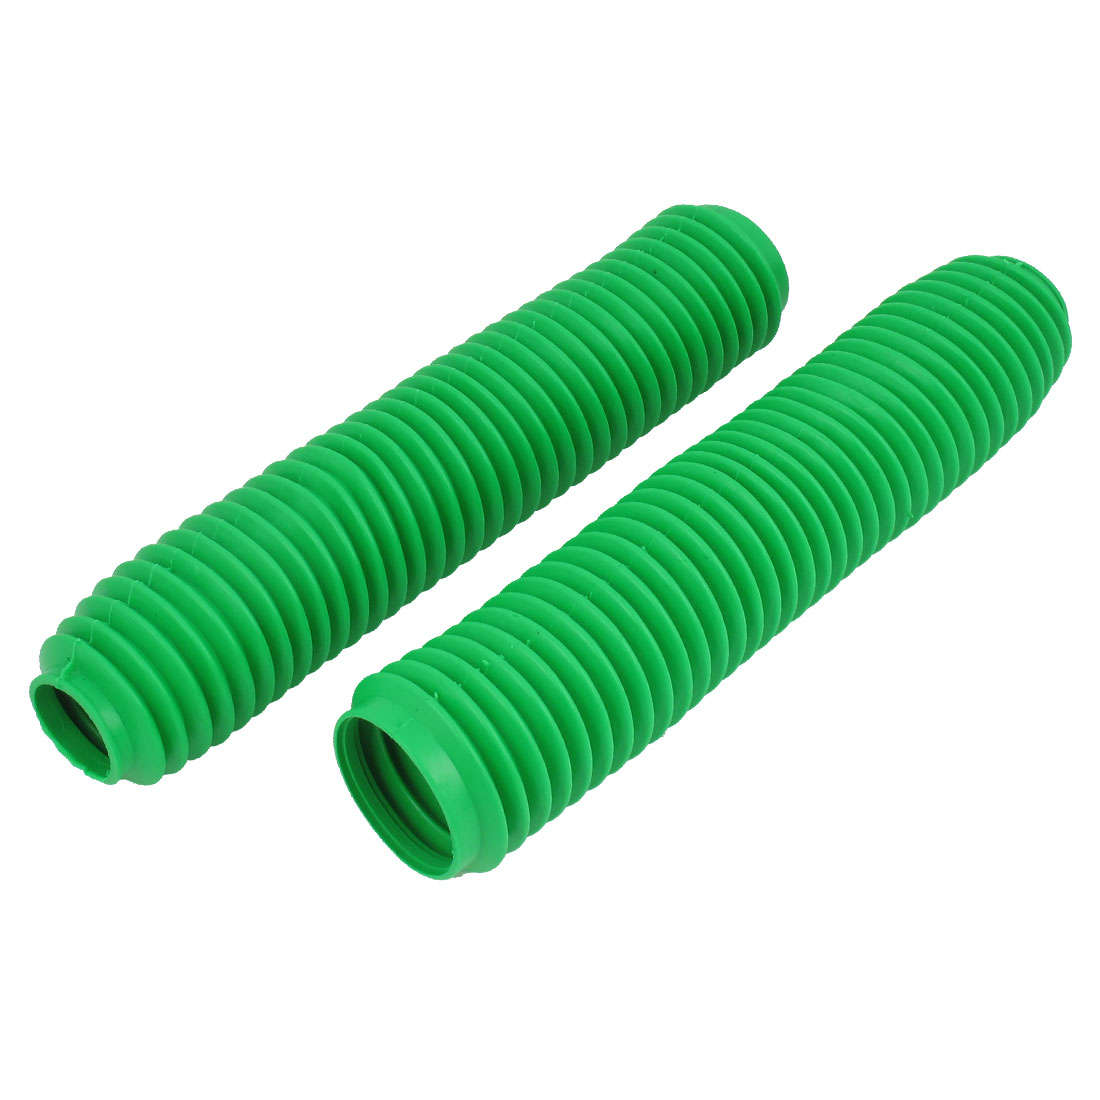 Pair 38cm Long Front Fork Cover Shock Absorber Dust Rubber Cover Green